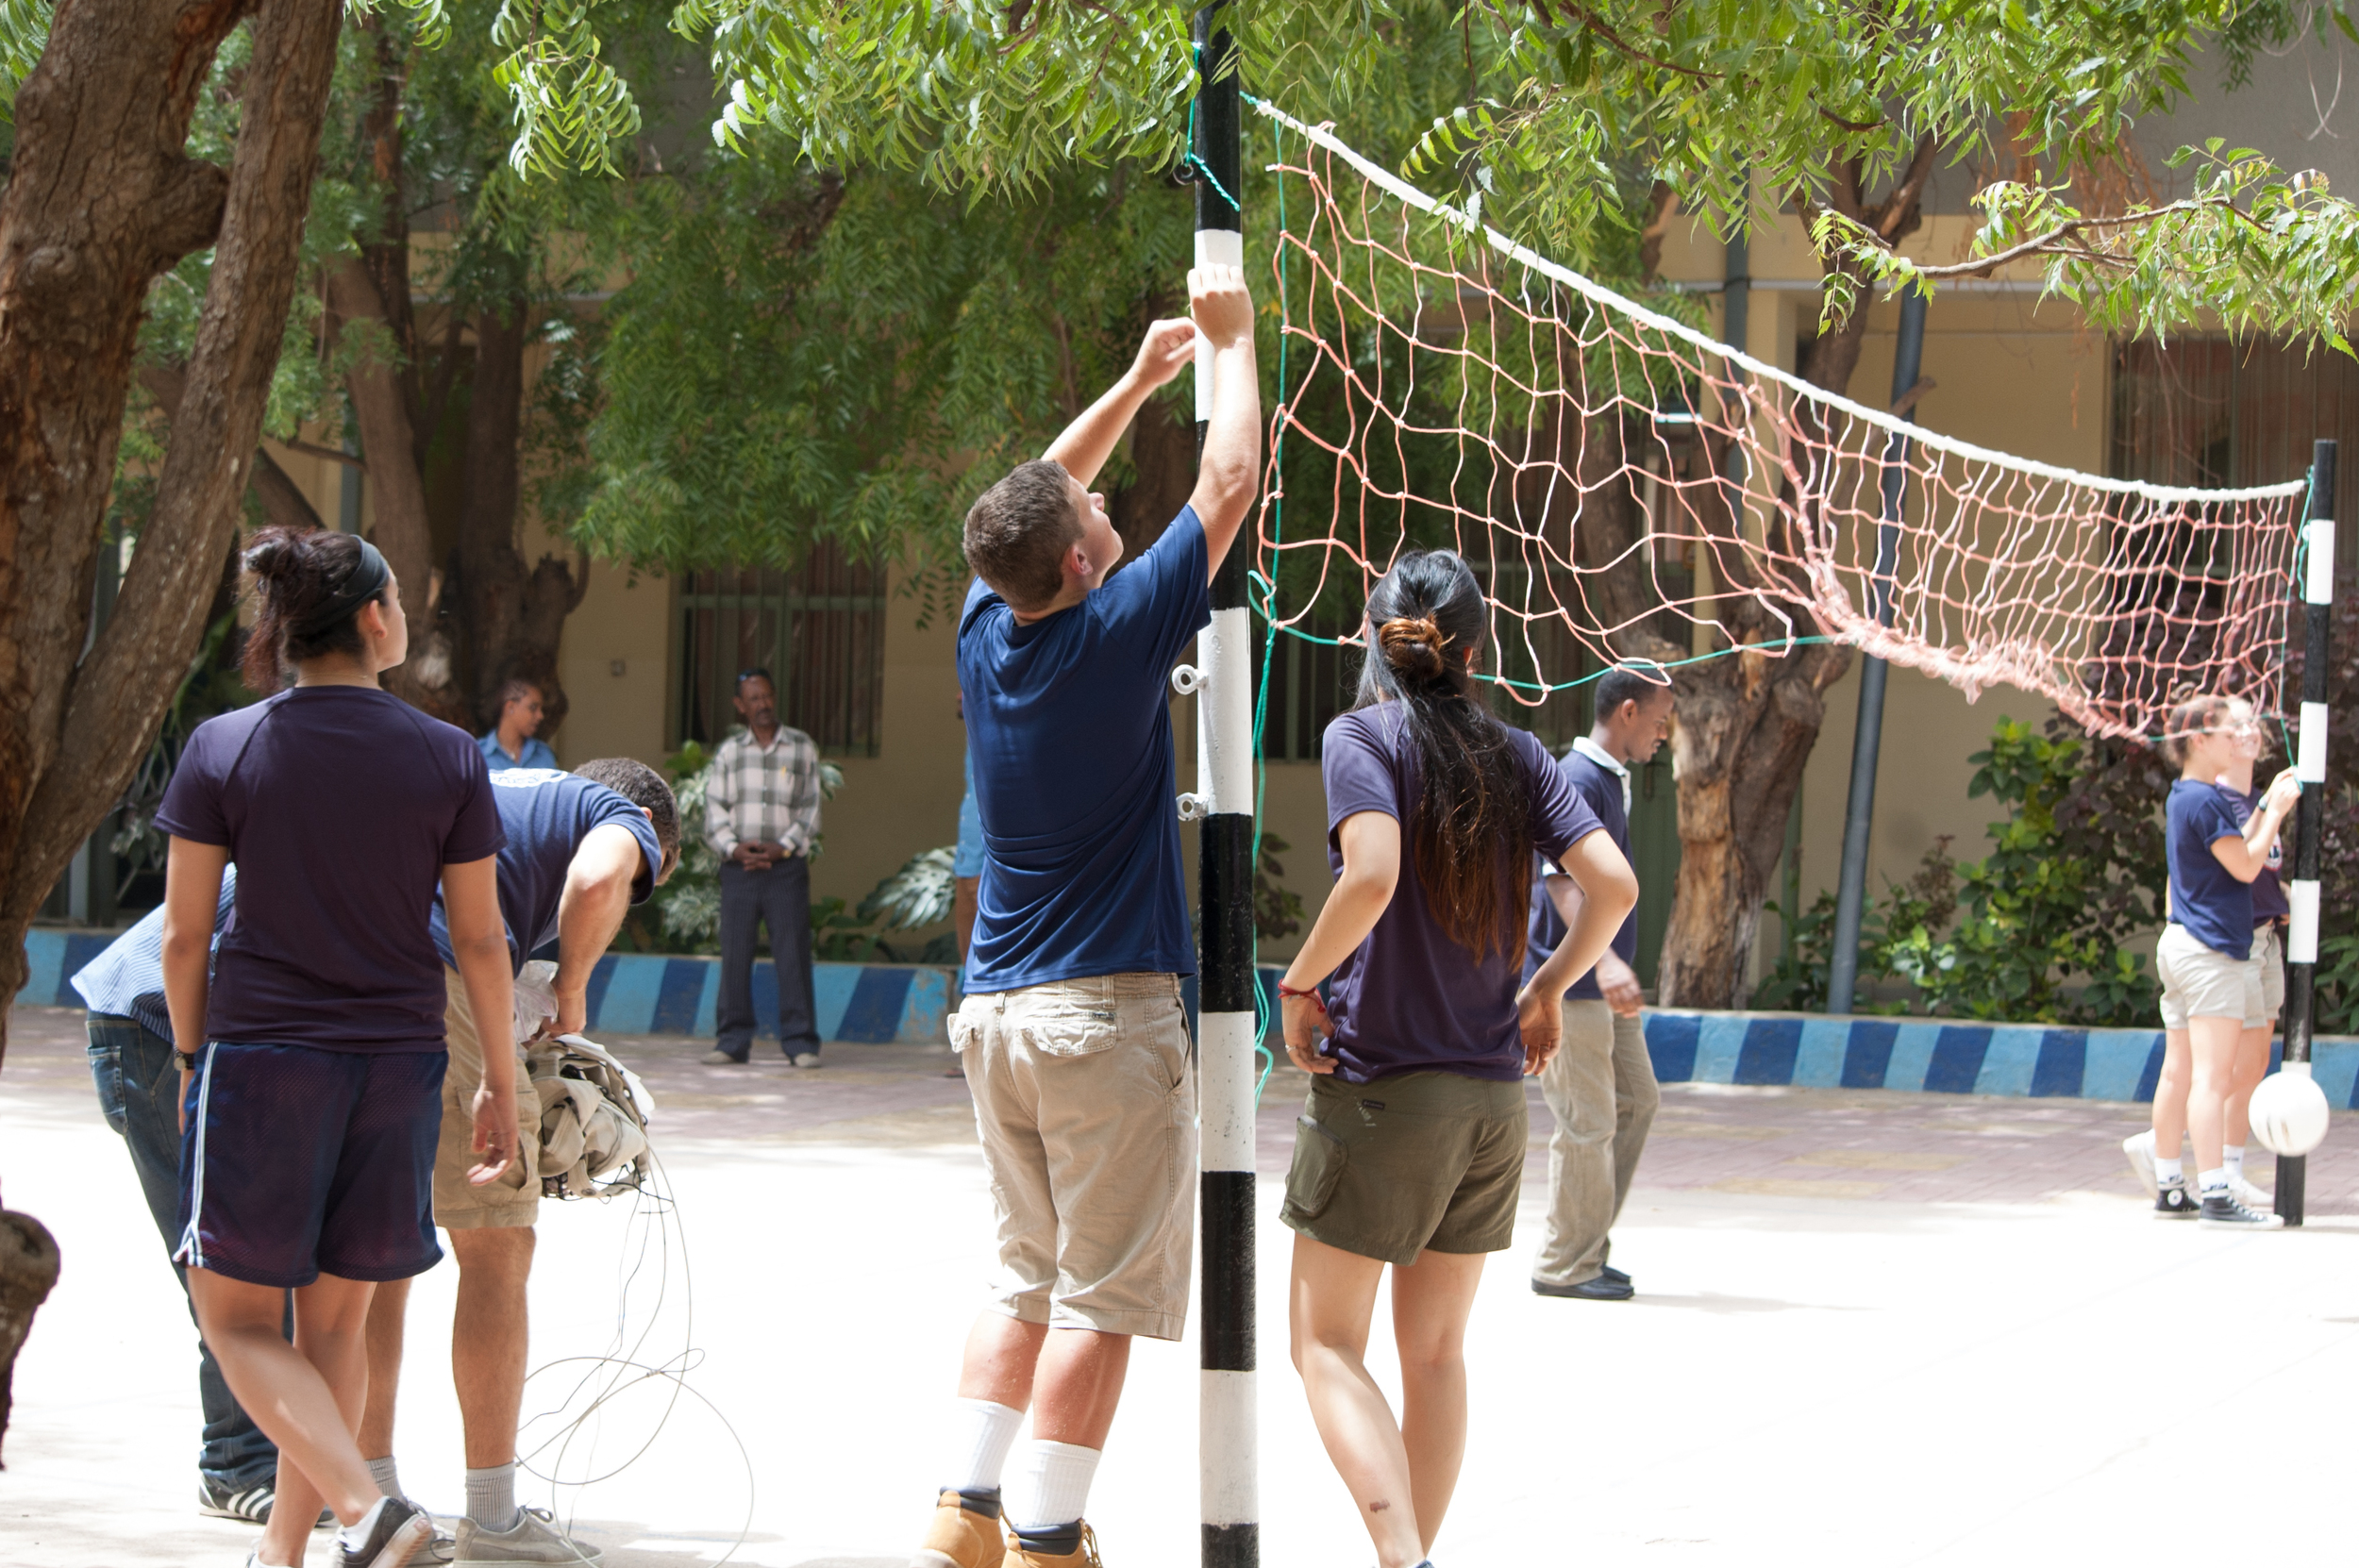 Putting up the new volleyball net